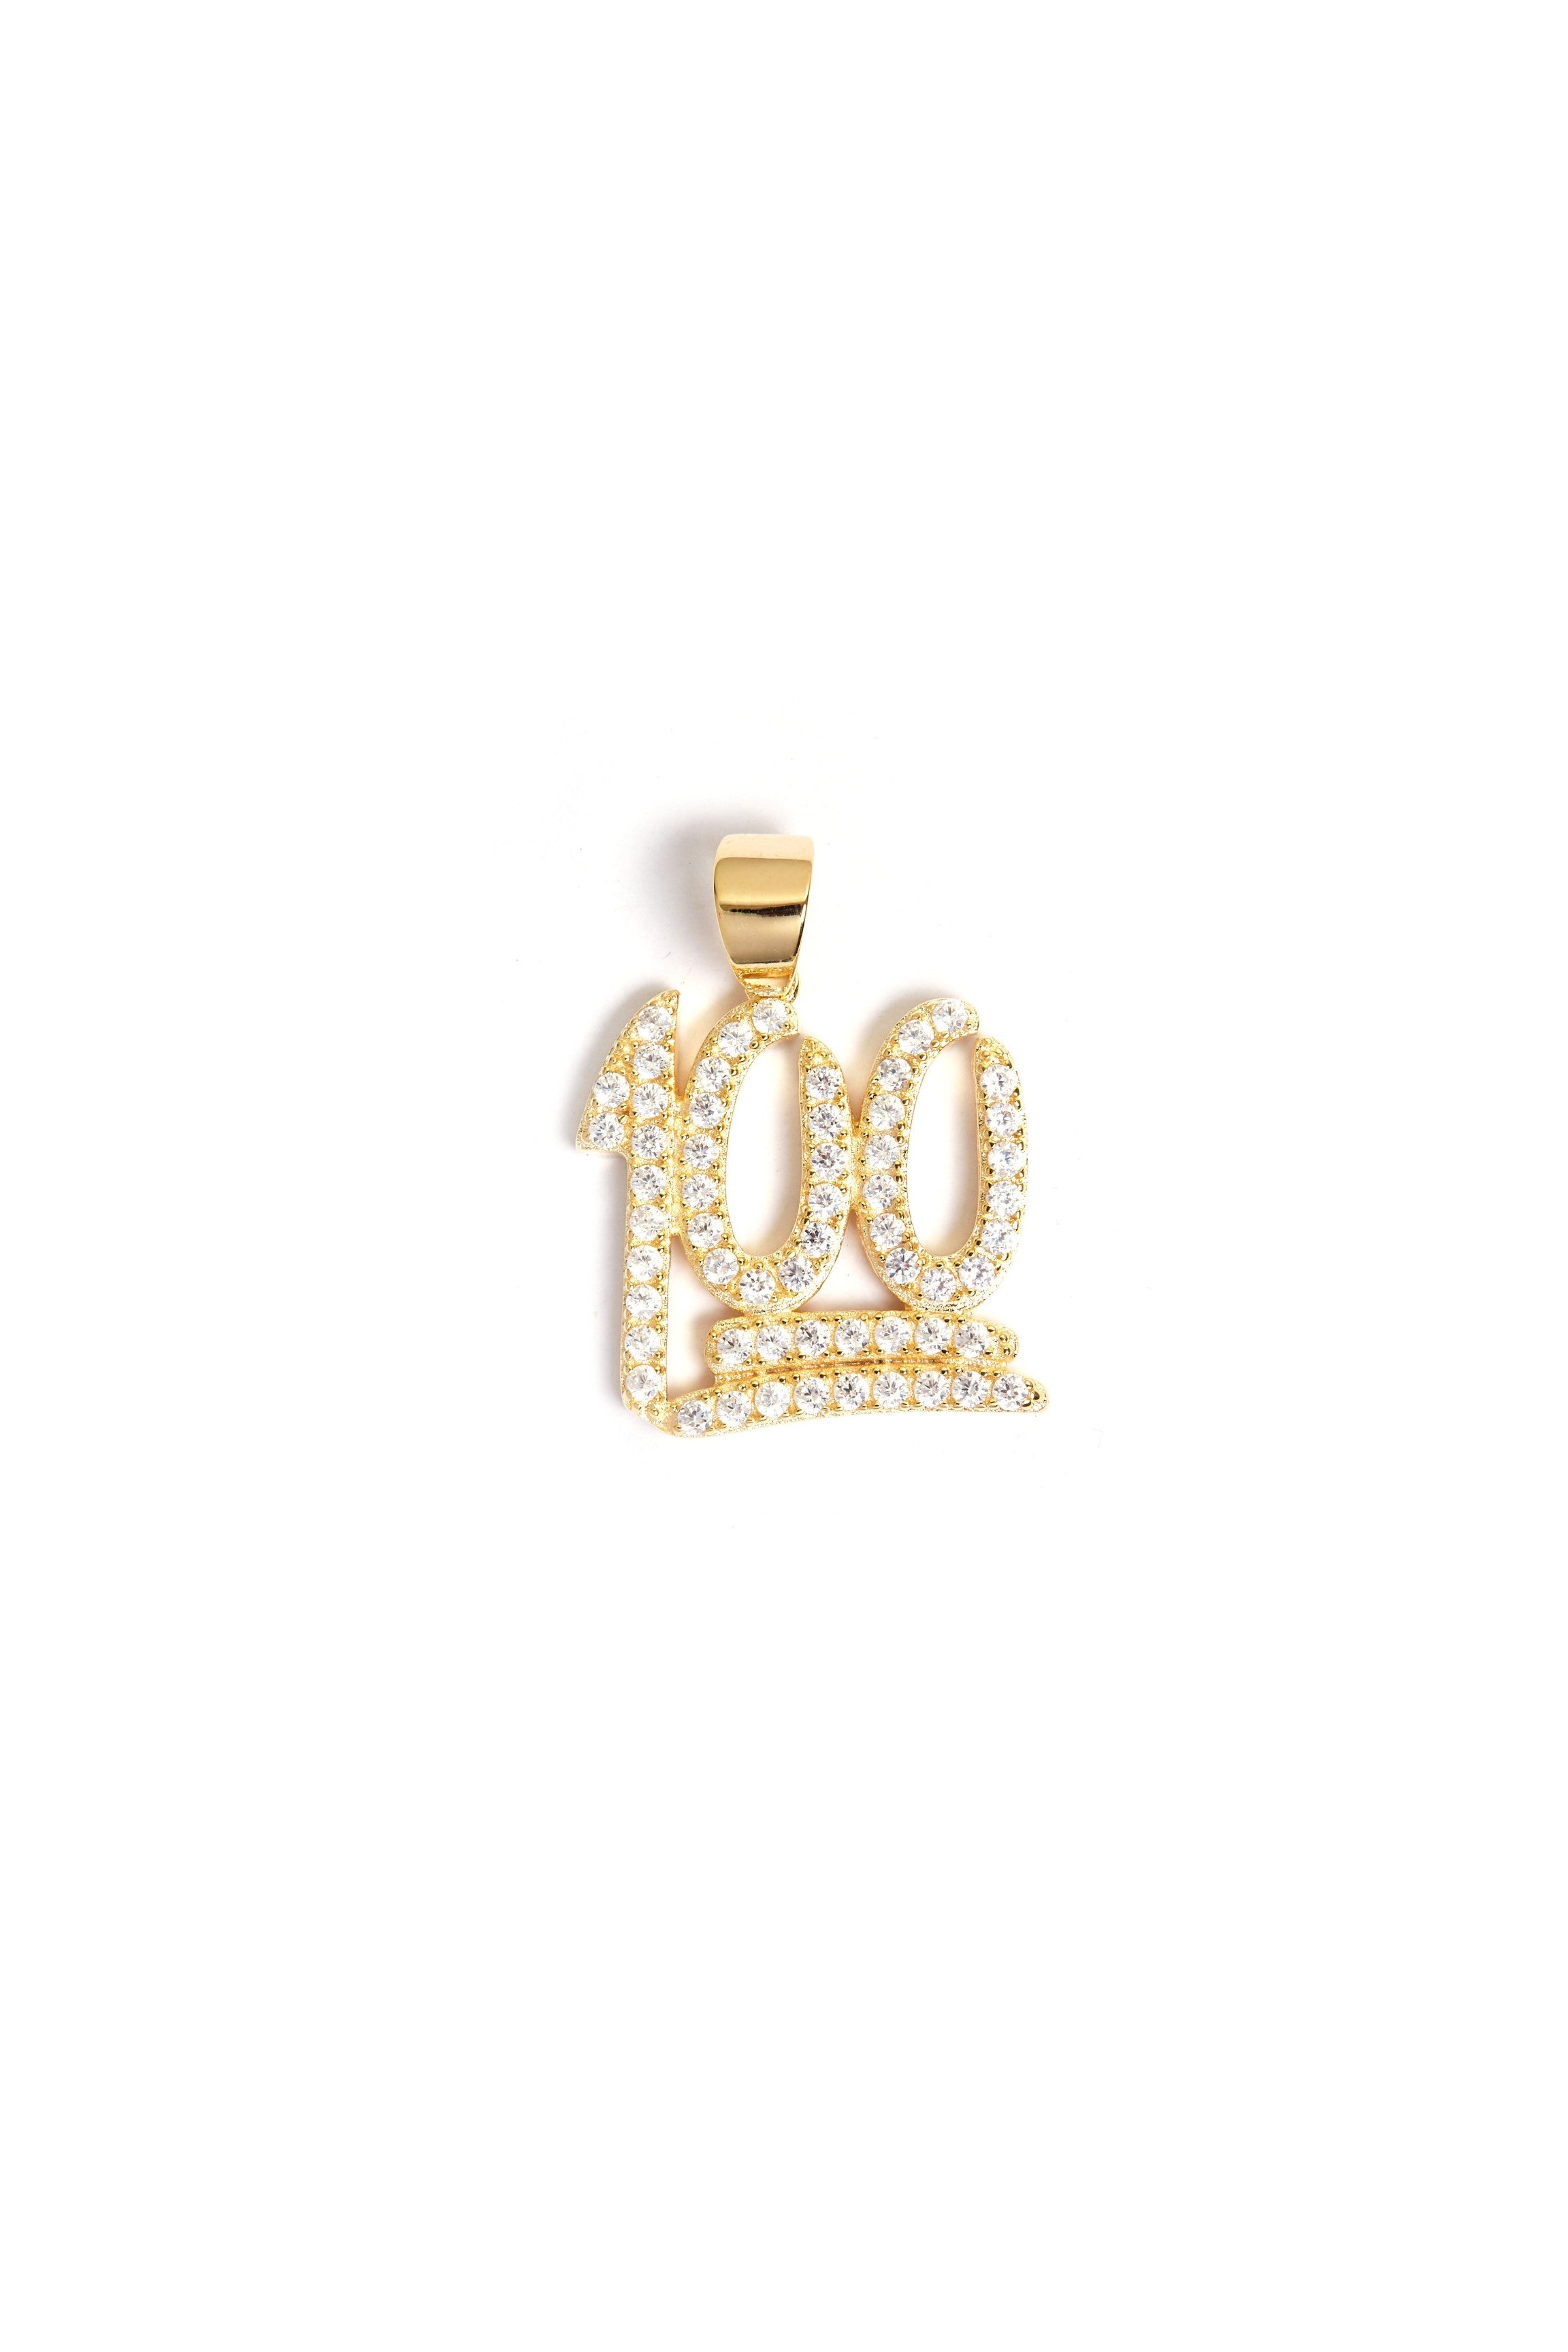 KEEP IT 100 GOLD PENDANT